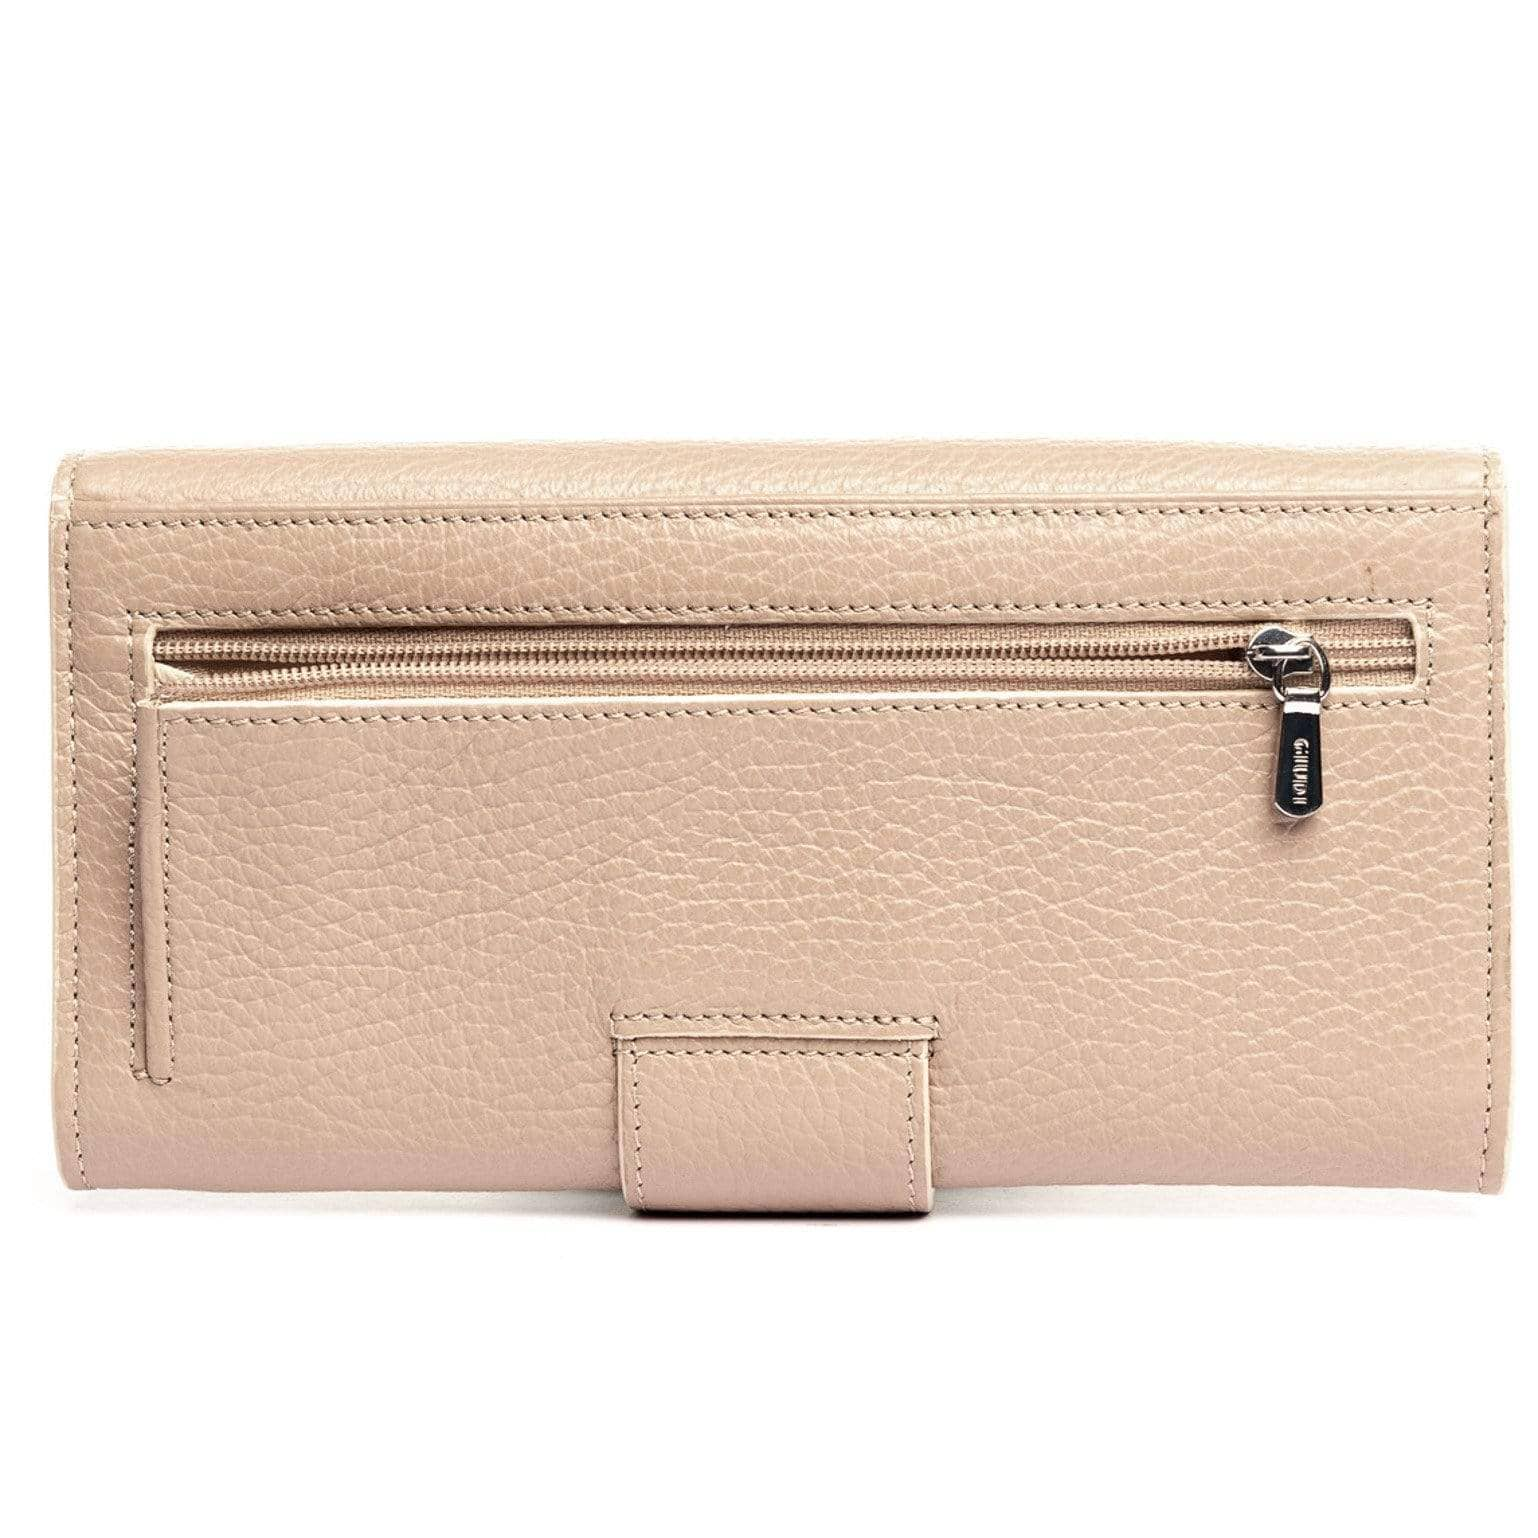 Womens Leather Clutch Wallet - Beige - Made in Italy